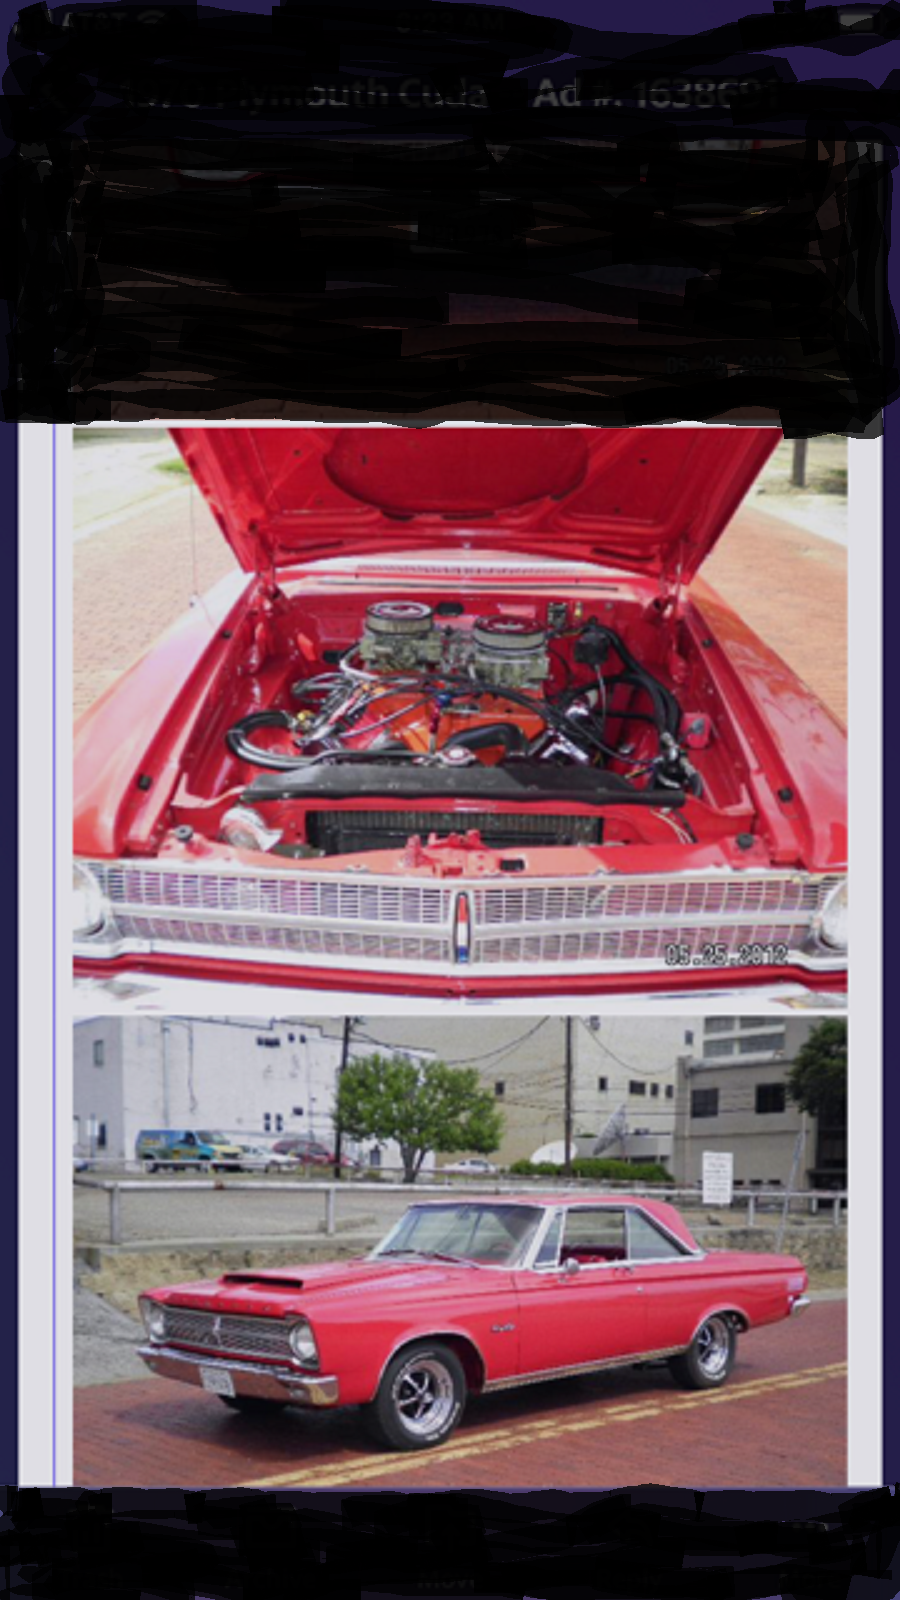 1965 Plymouth Satellite For Sale (picture 3 of 3)